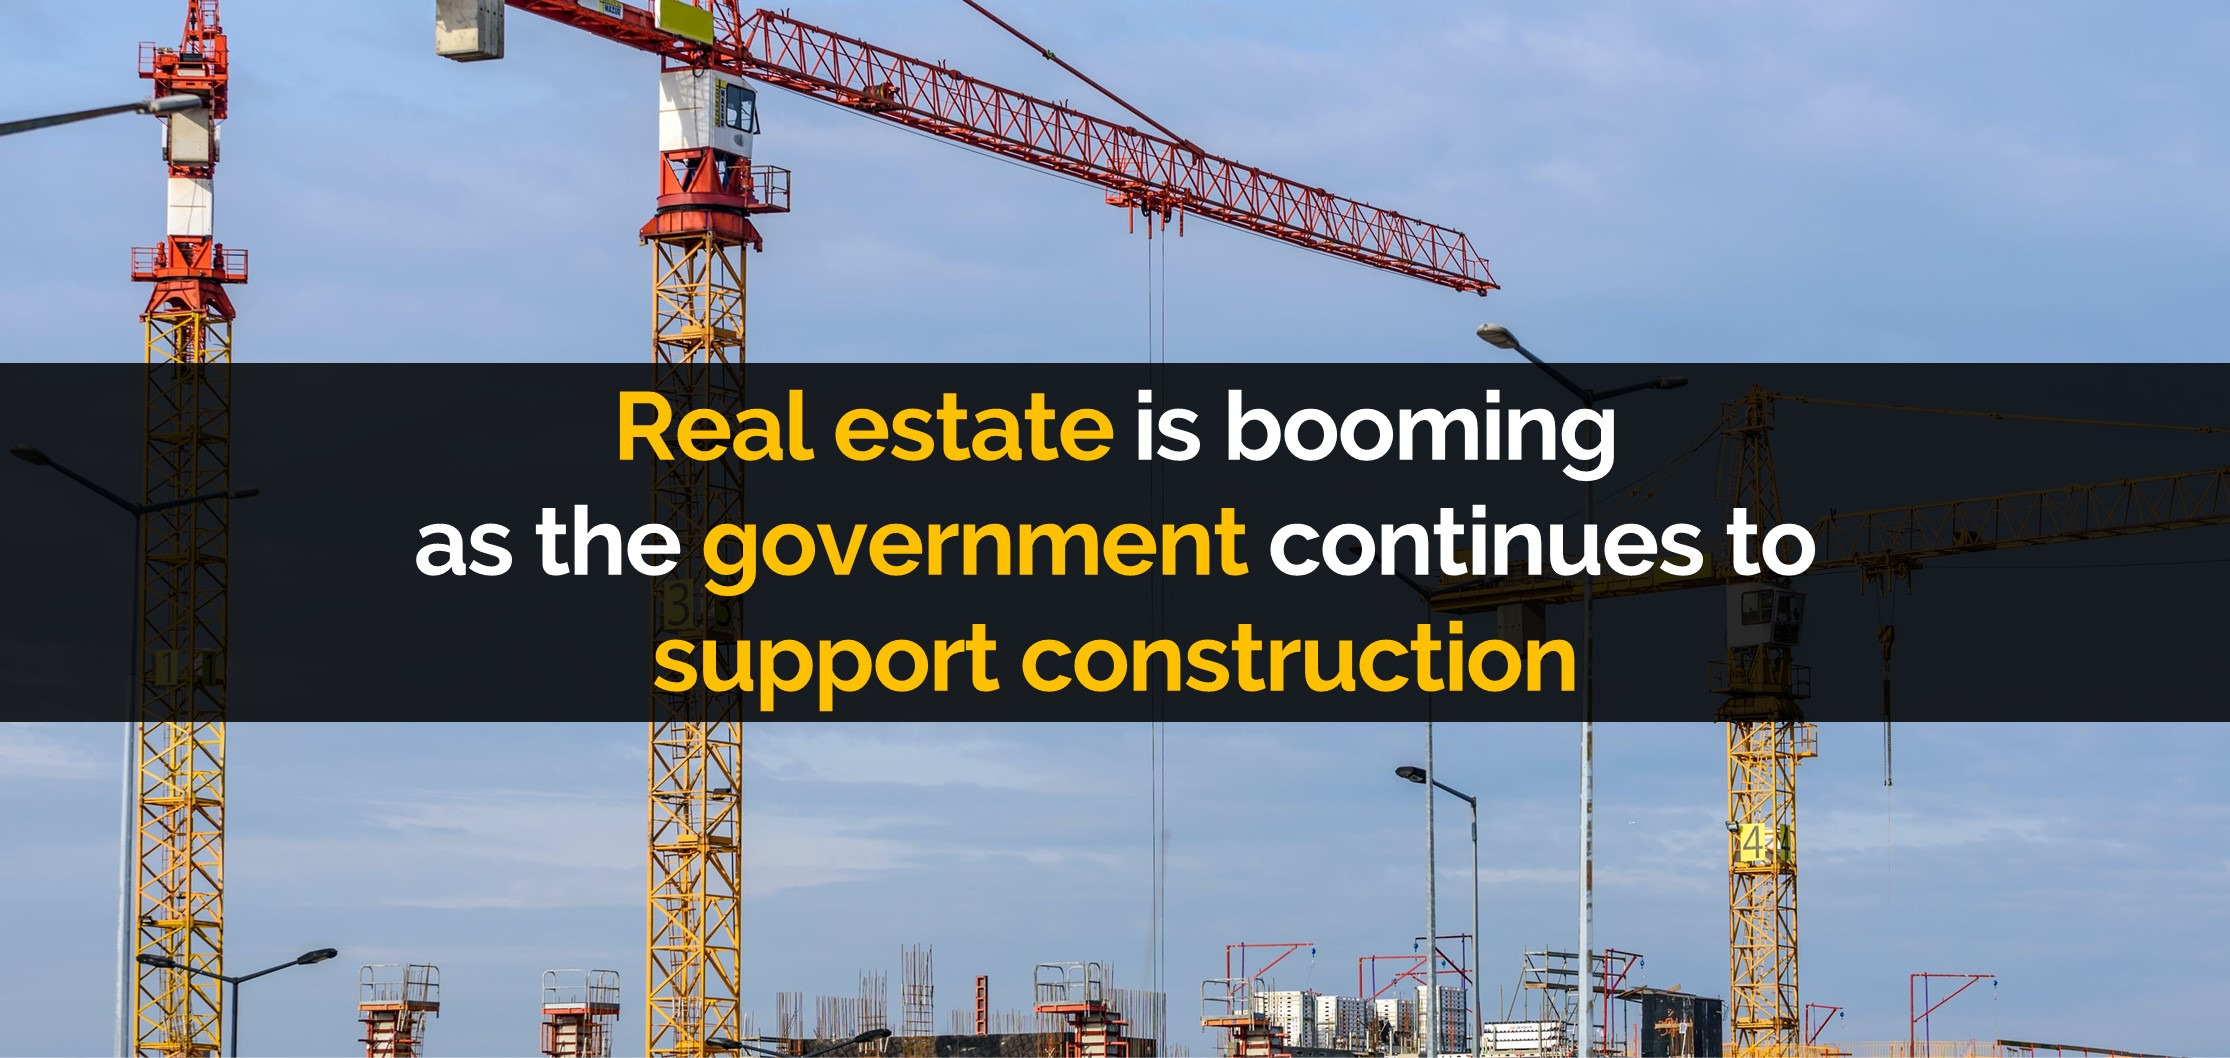 Real estate is booming as the government continues to support construction